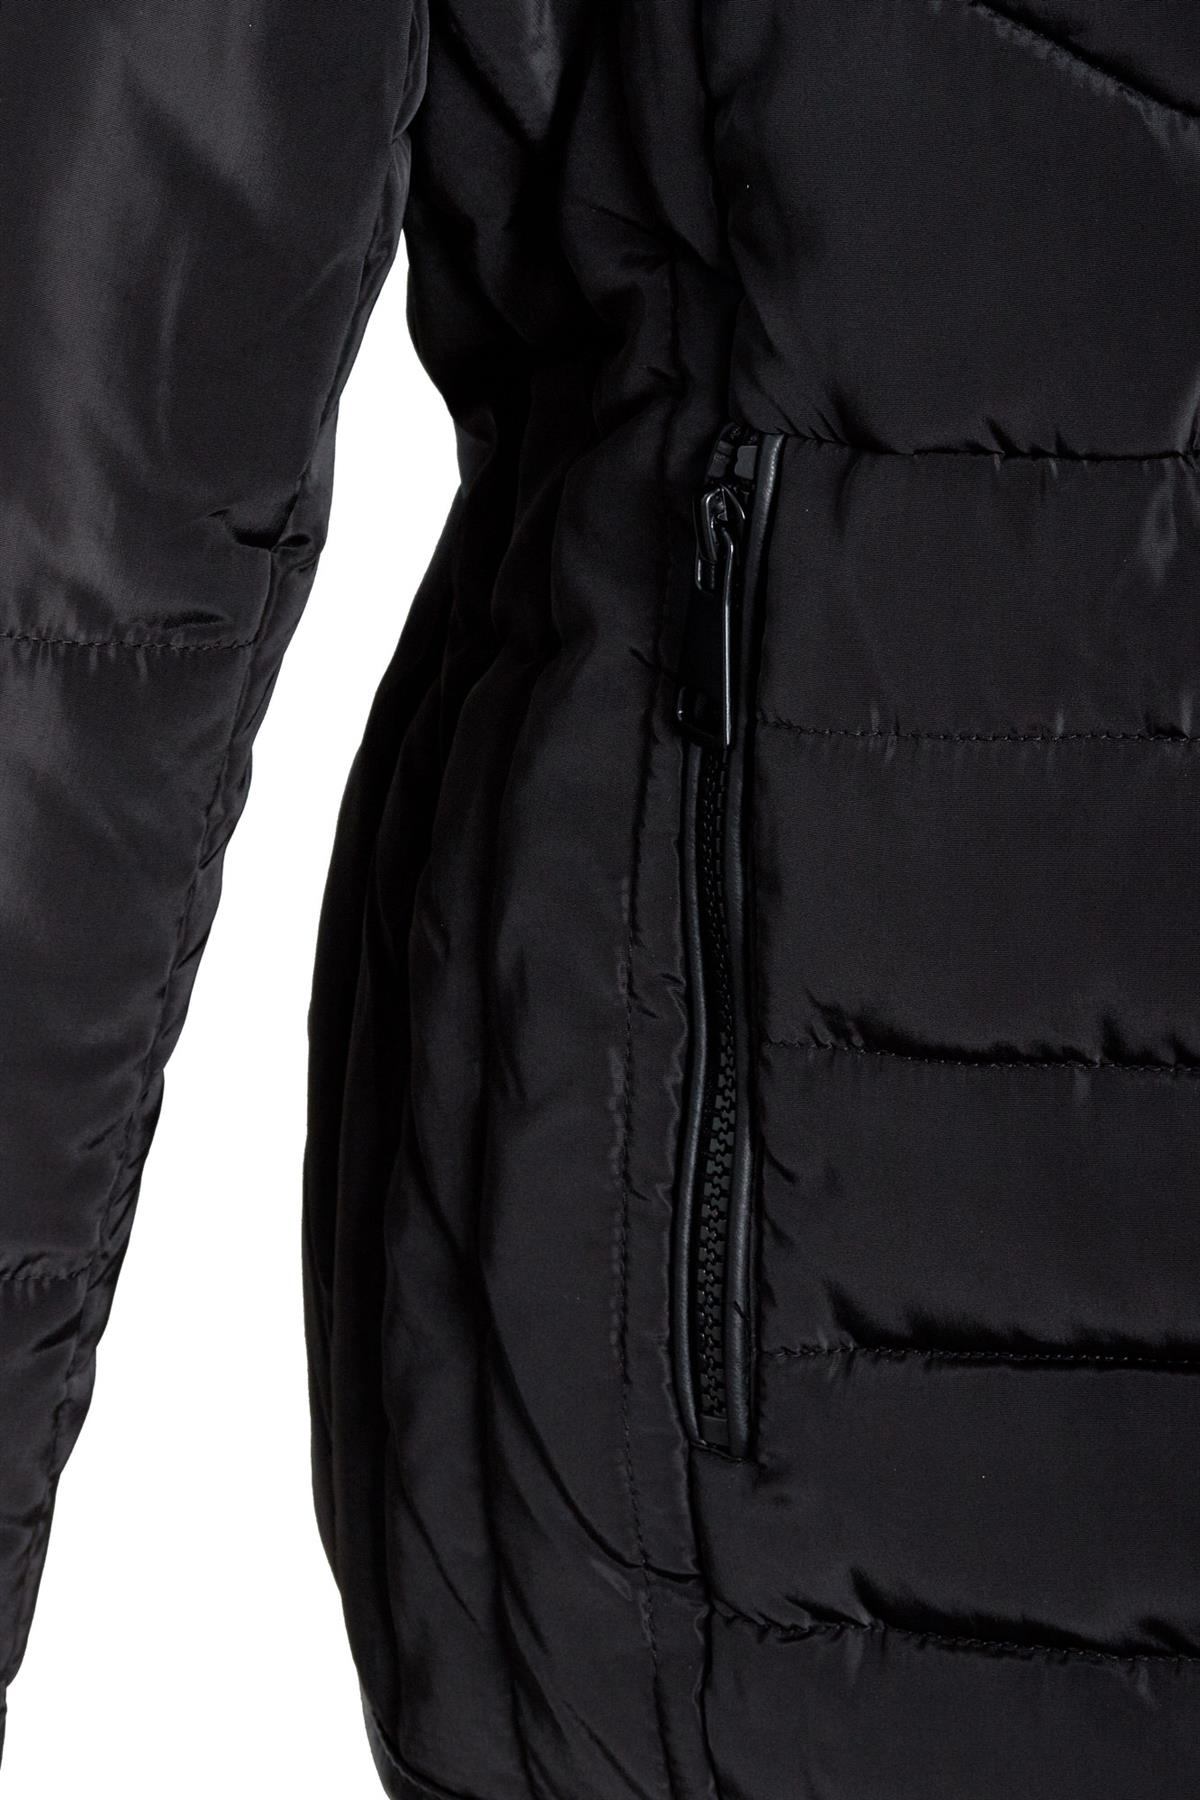 Shelikes-Womens-Ladies-Quilted-Padded-Winter-Warm-Fur-Parka-Jacket thumbnail 3